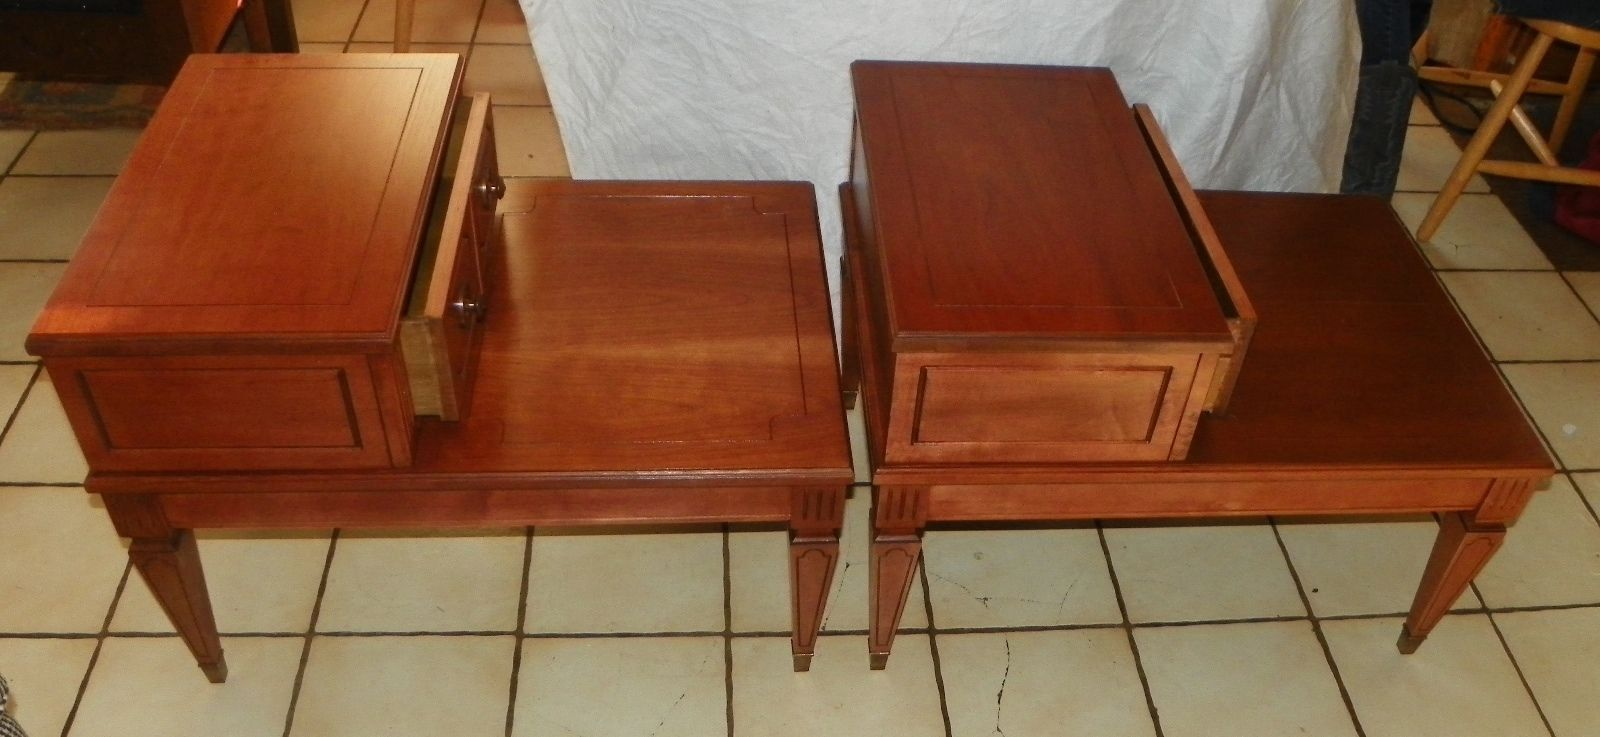 Pair of Cherry Mersman Step End Tables Side and 50 similar items